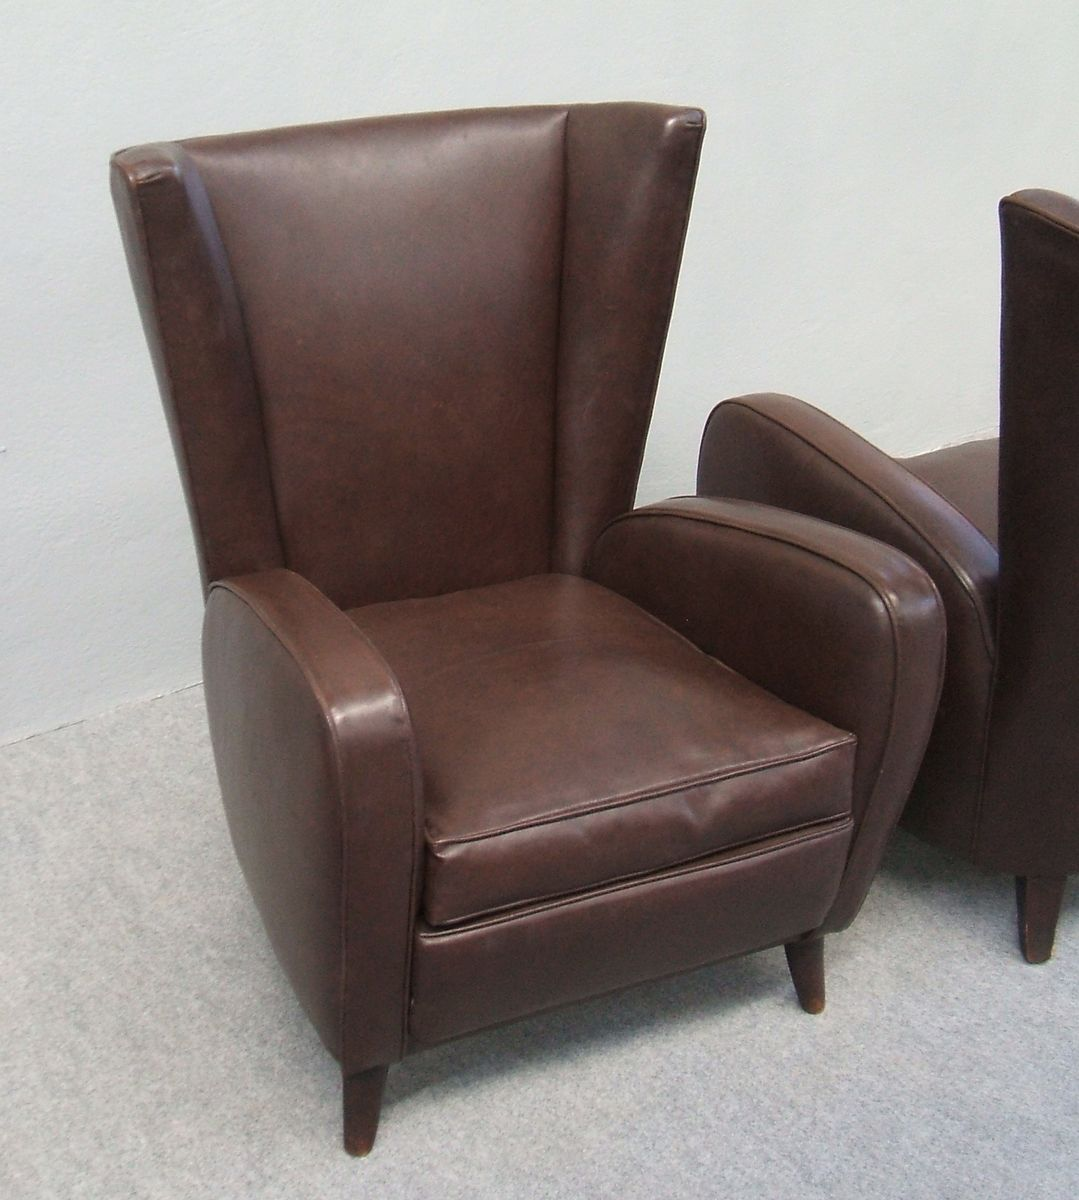 Italian leather armchairs 1940s set of 2 for sale at pamono for 2 armchairs for sale